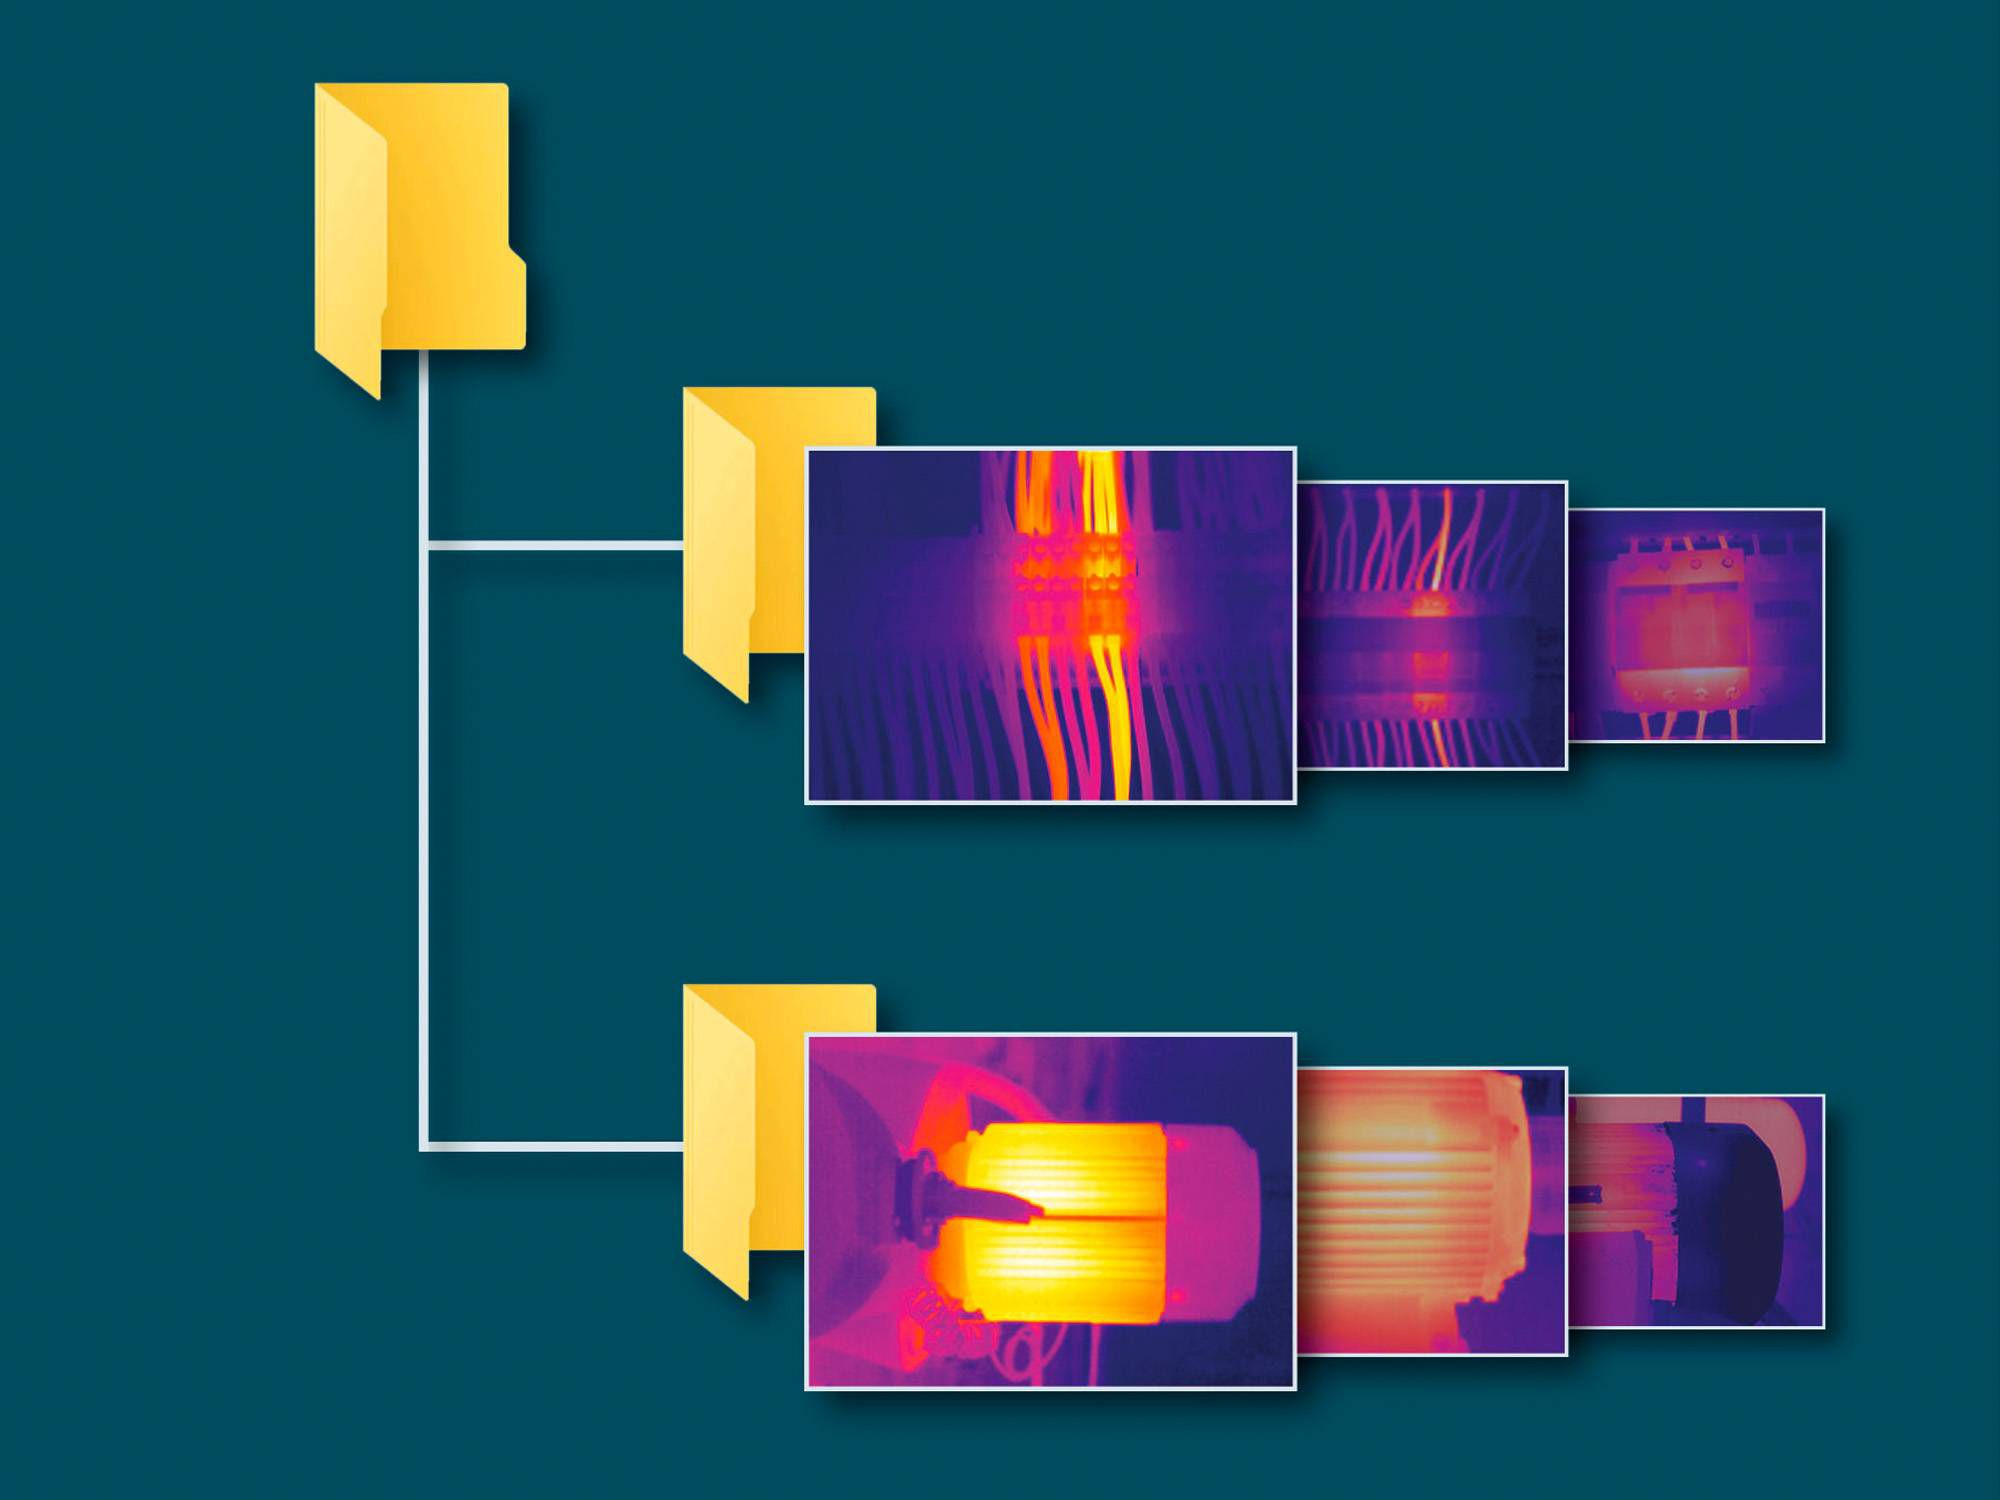 Database with thermal images